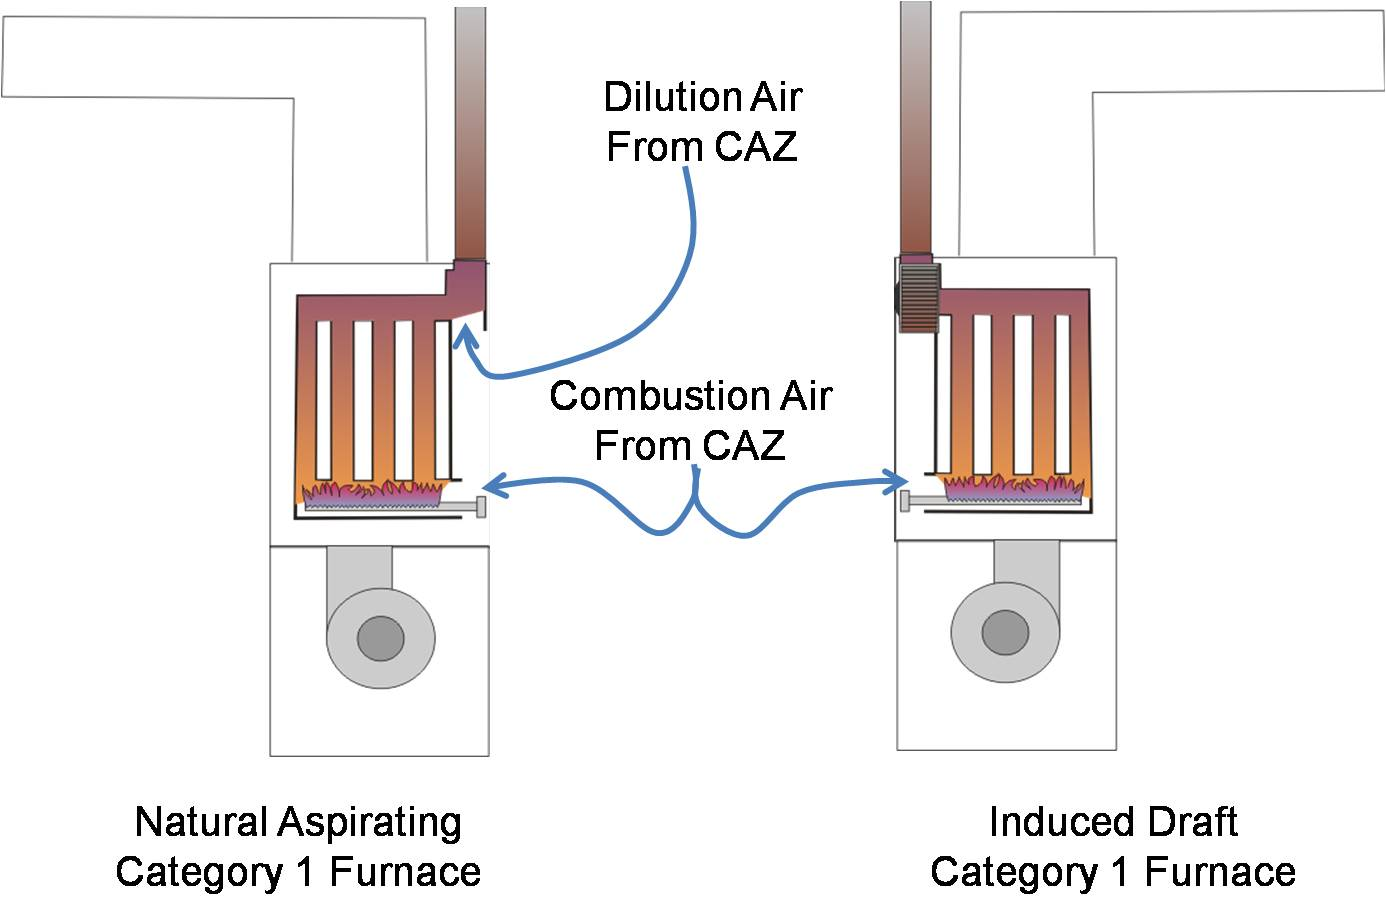 The natural draft and induced draft furnace are both Category I appliances that receive combustion air from the combustion appliance zone